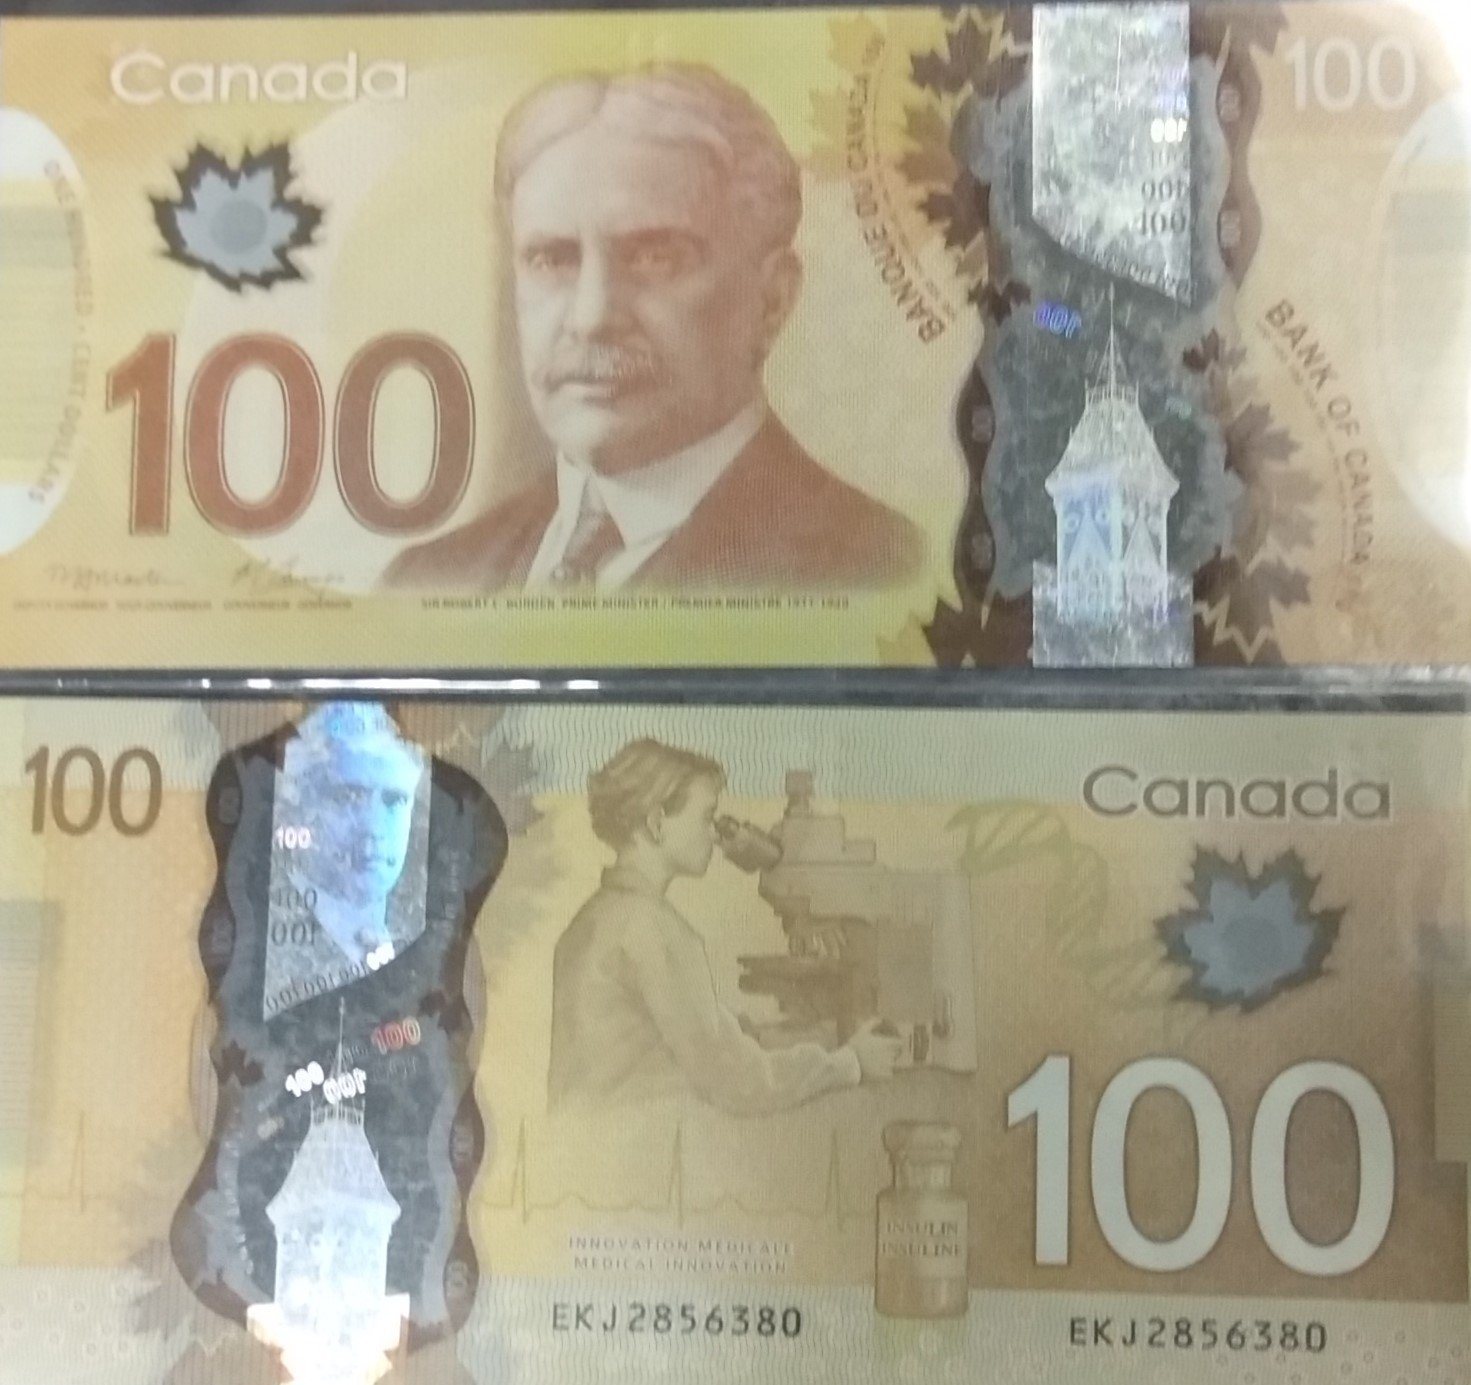 Canada 100 dollars polymer banknote for sale